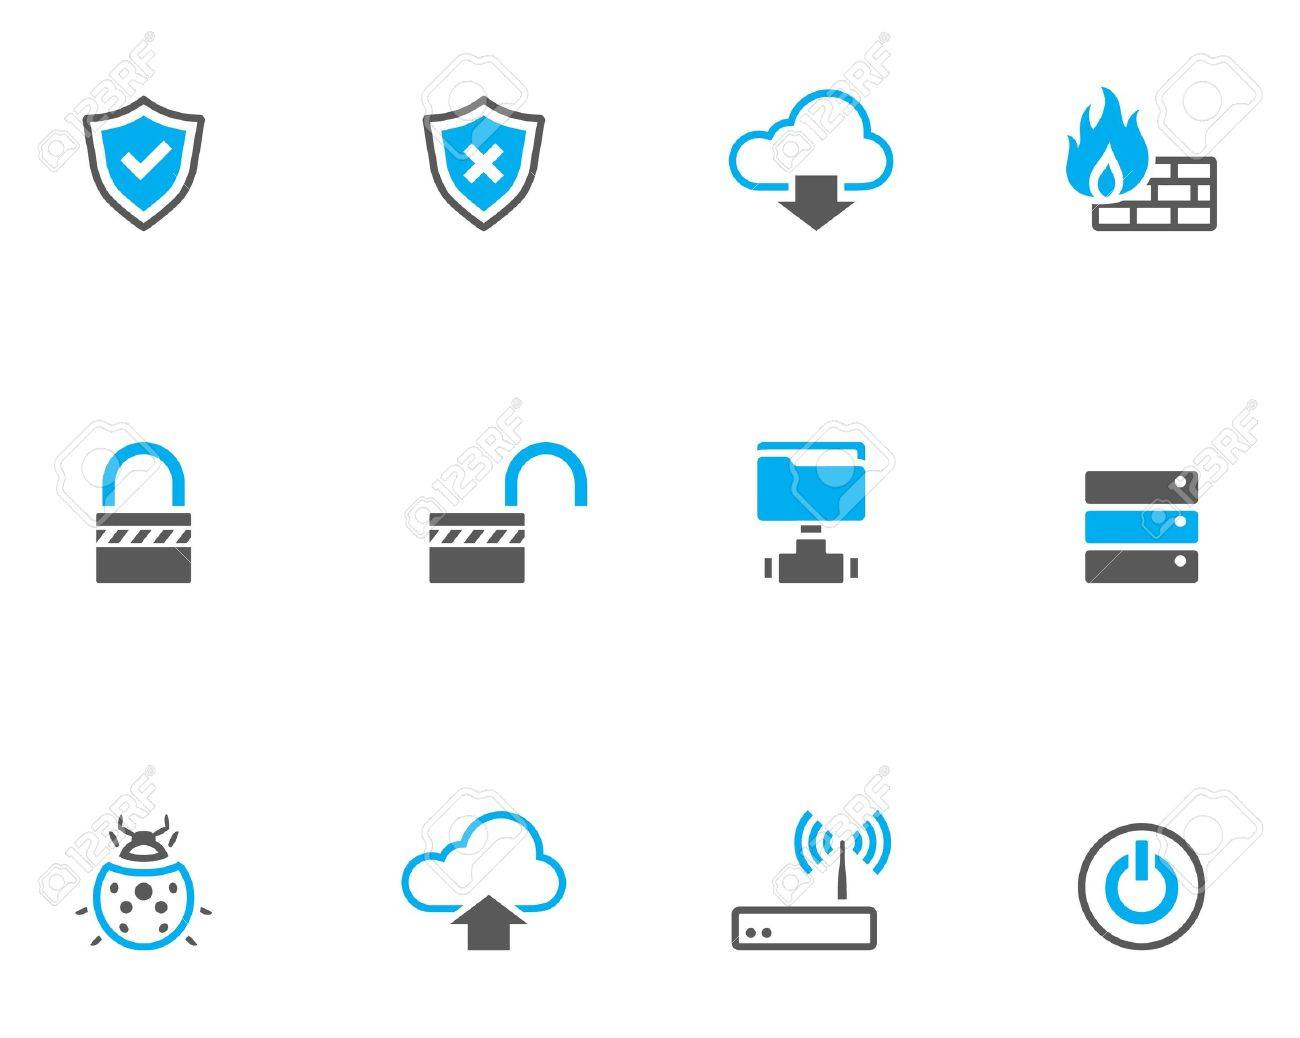 Computer network icon series in duo tone color style. Stock Vector - 17233820